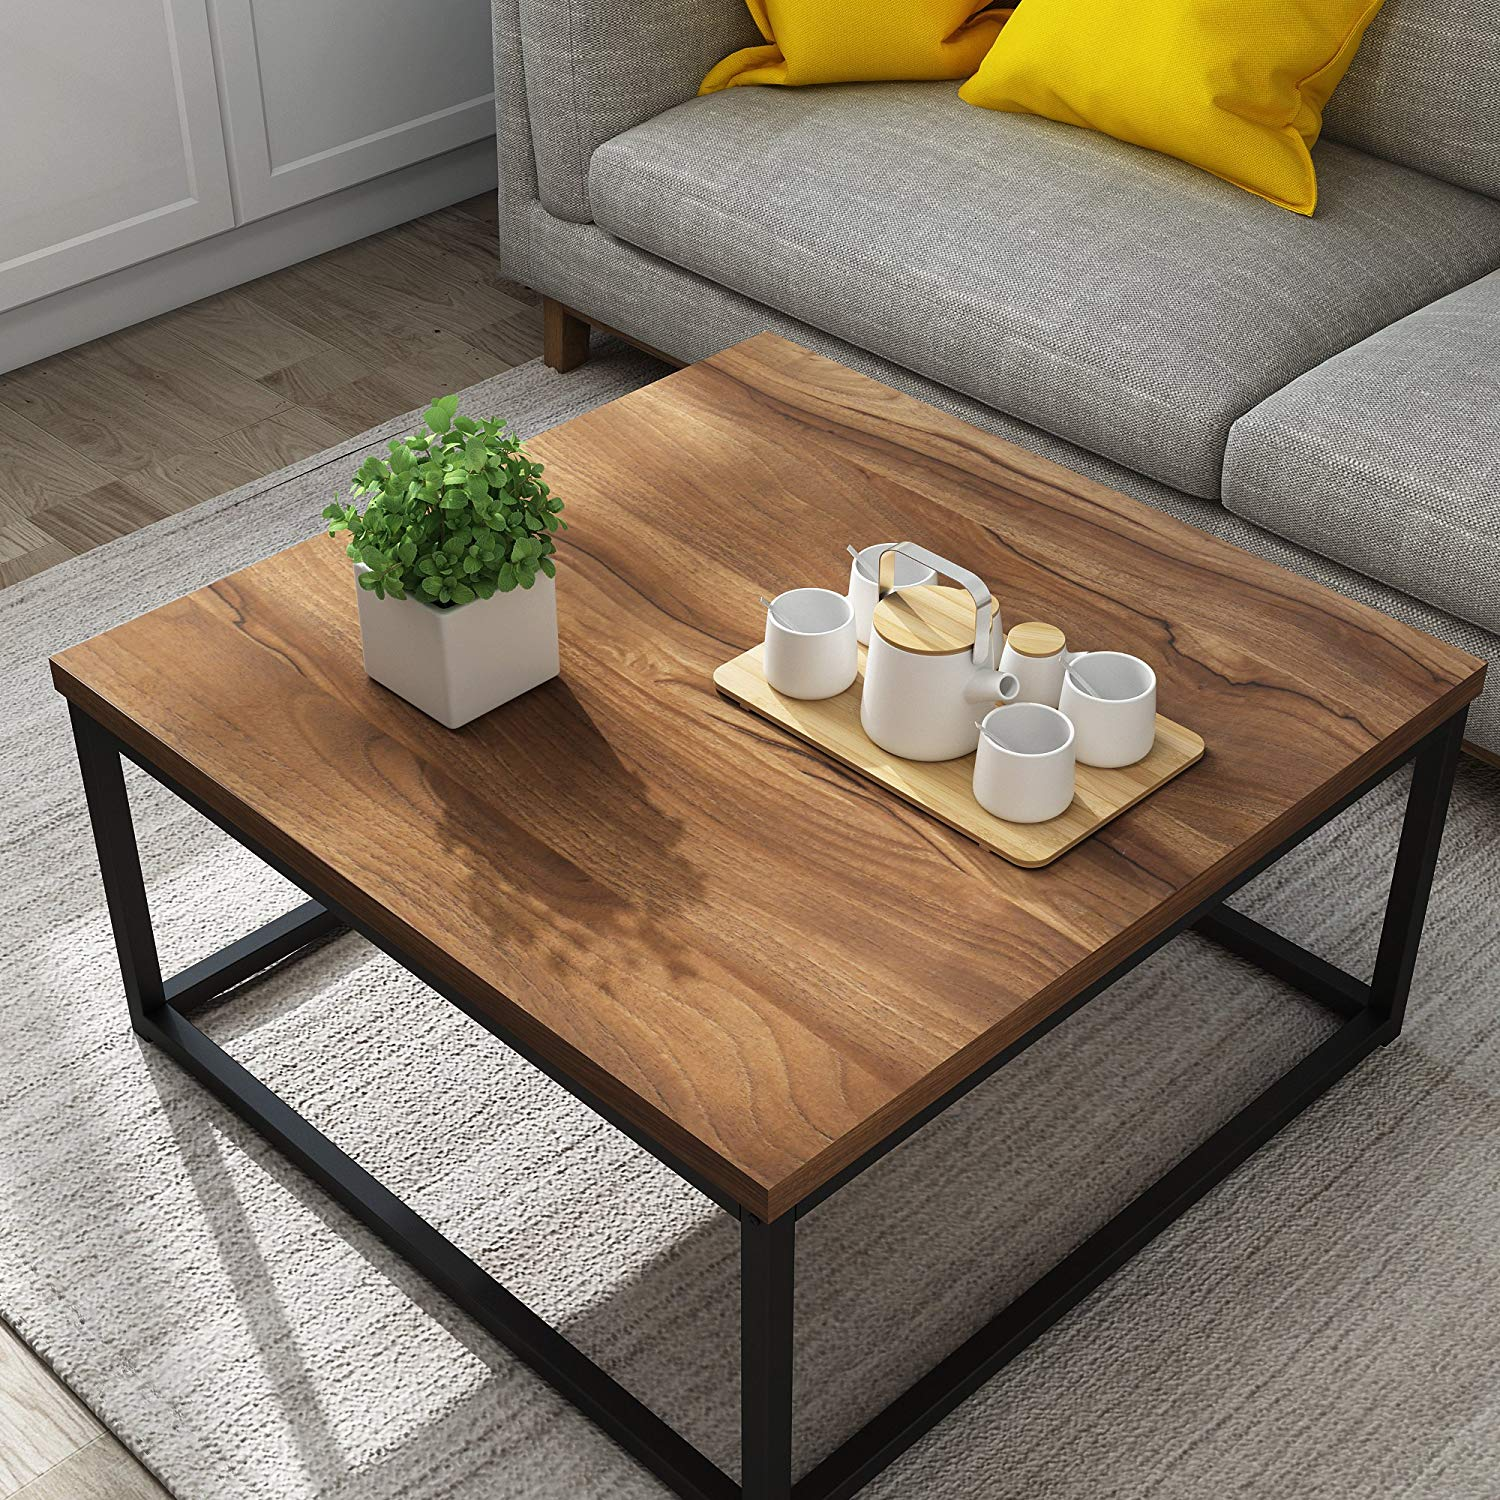 CLIVE Mid-Century Style Walnut Colour Coffee Table with Black Metal Frame from Cherry Free Furniture